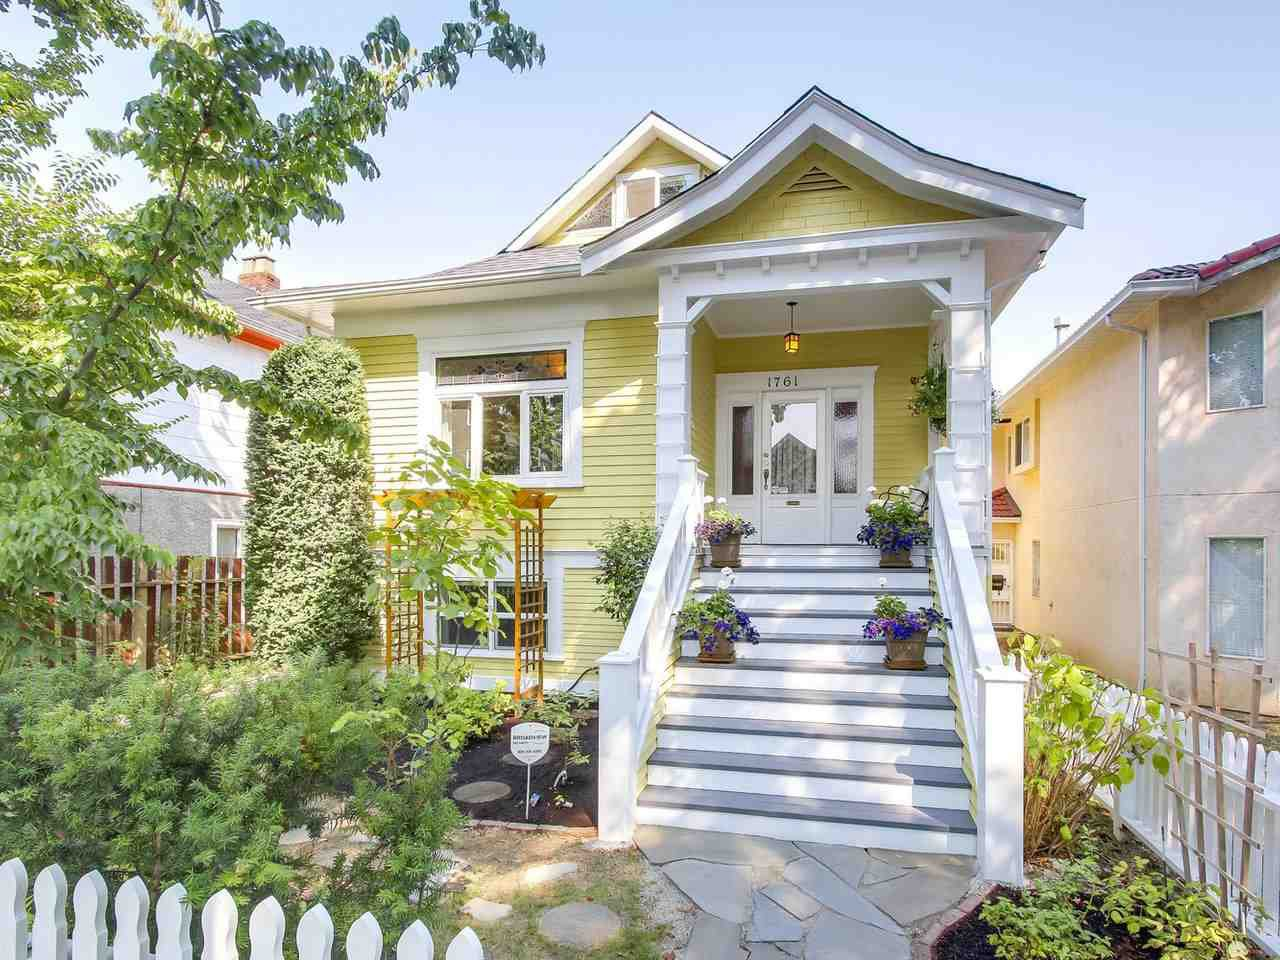 Main Photo: 1761 E 13TH AVENUE in Vancouver: Grandview VE House for sale (Vancouver East)  : MLS®# R2202018